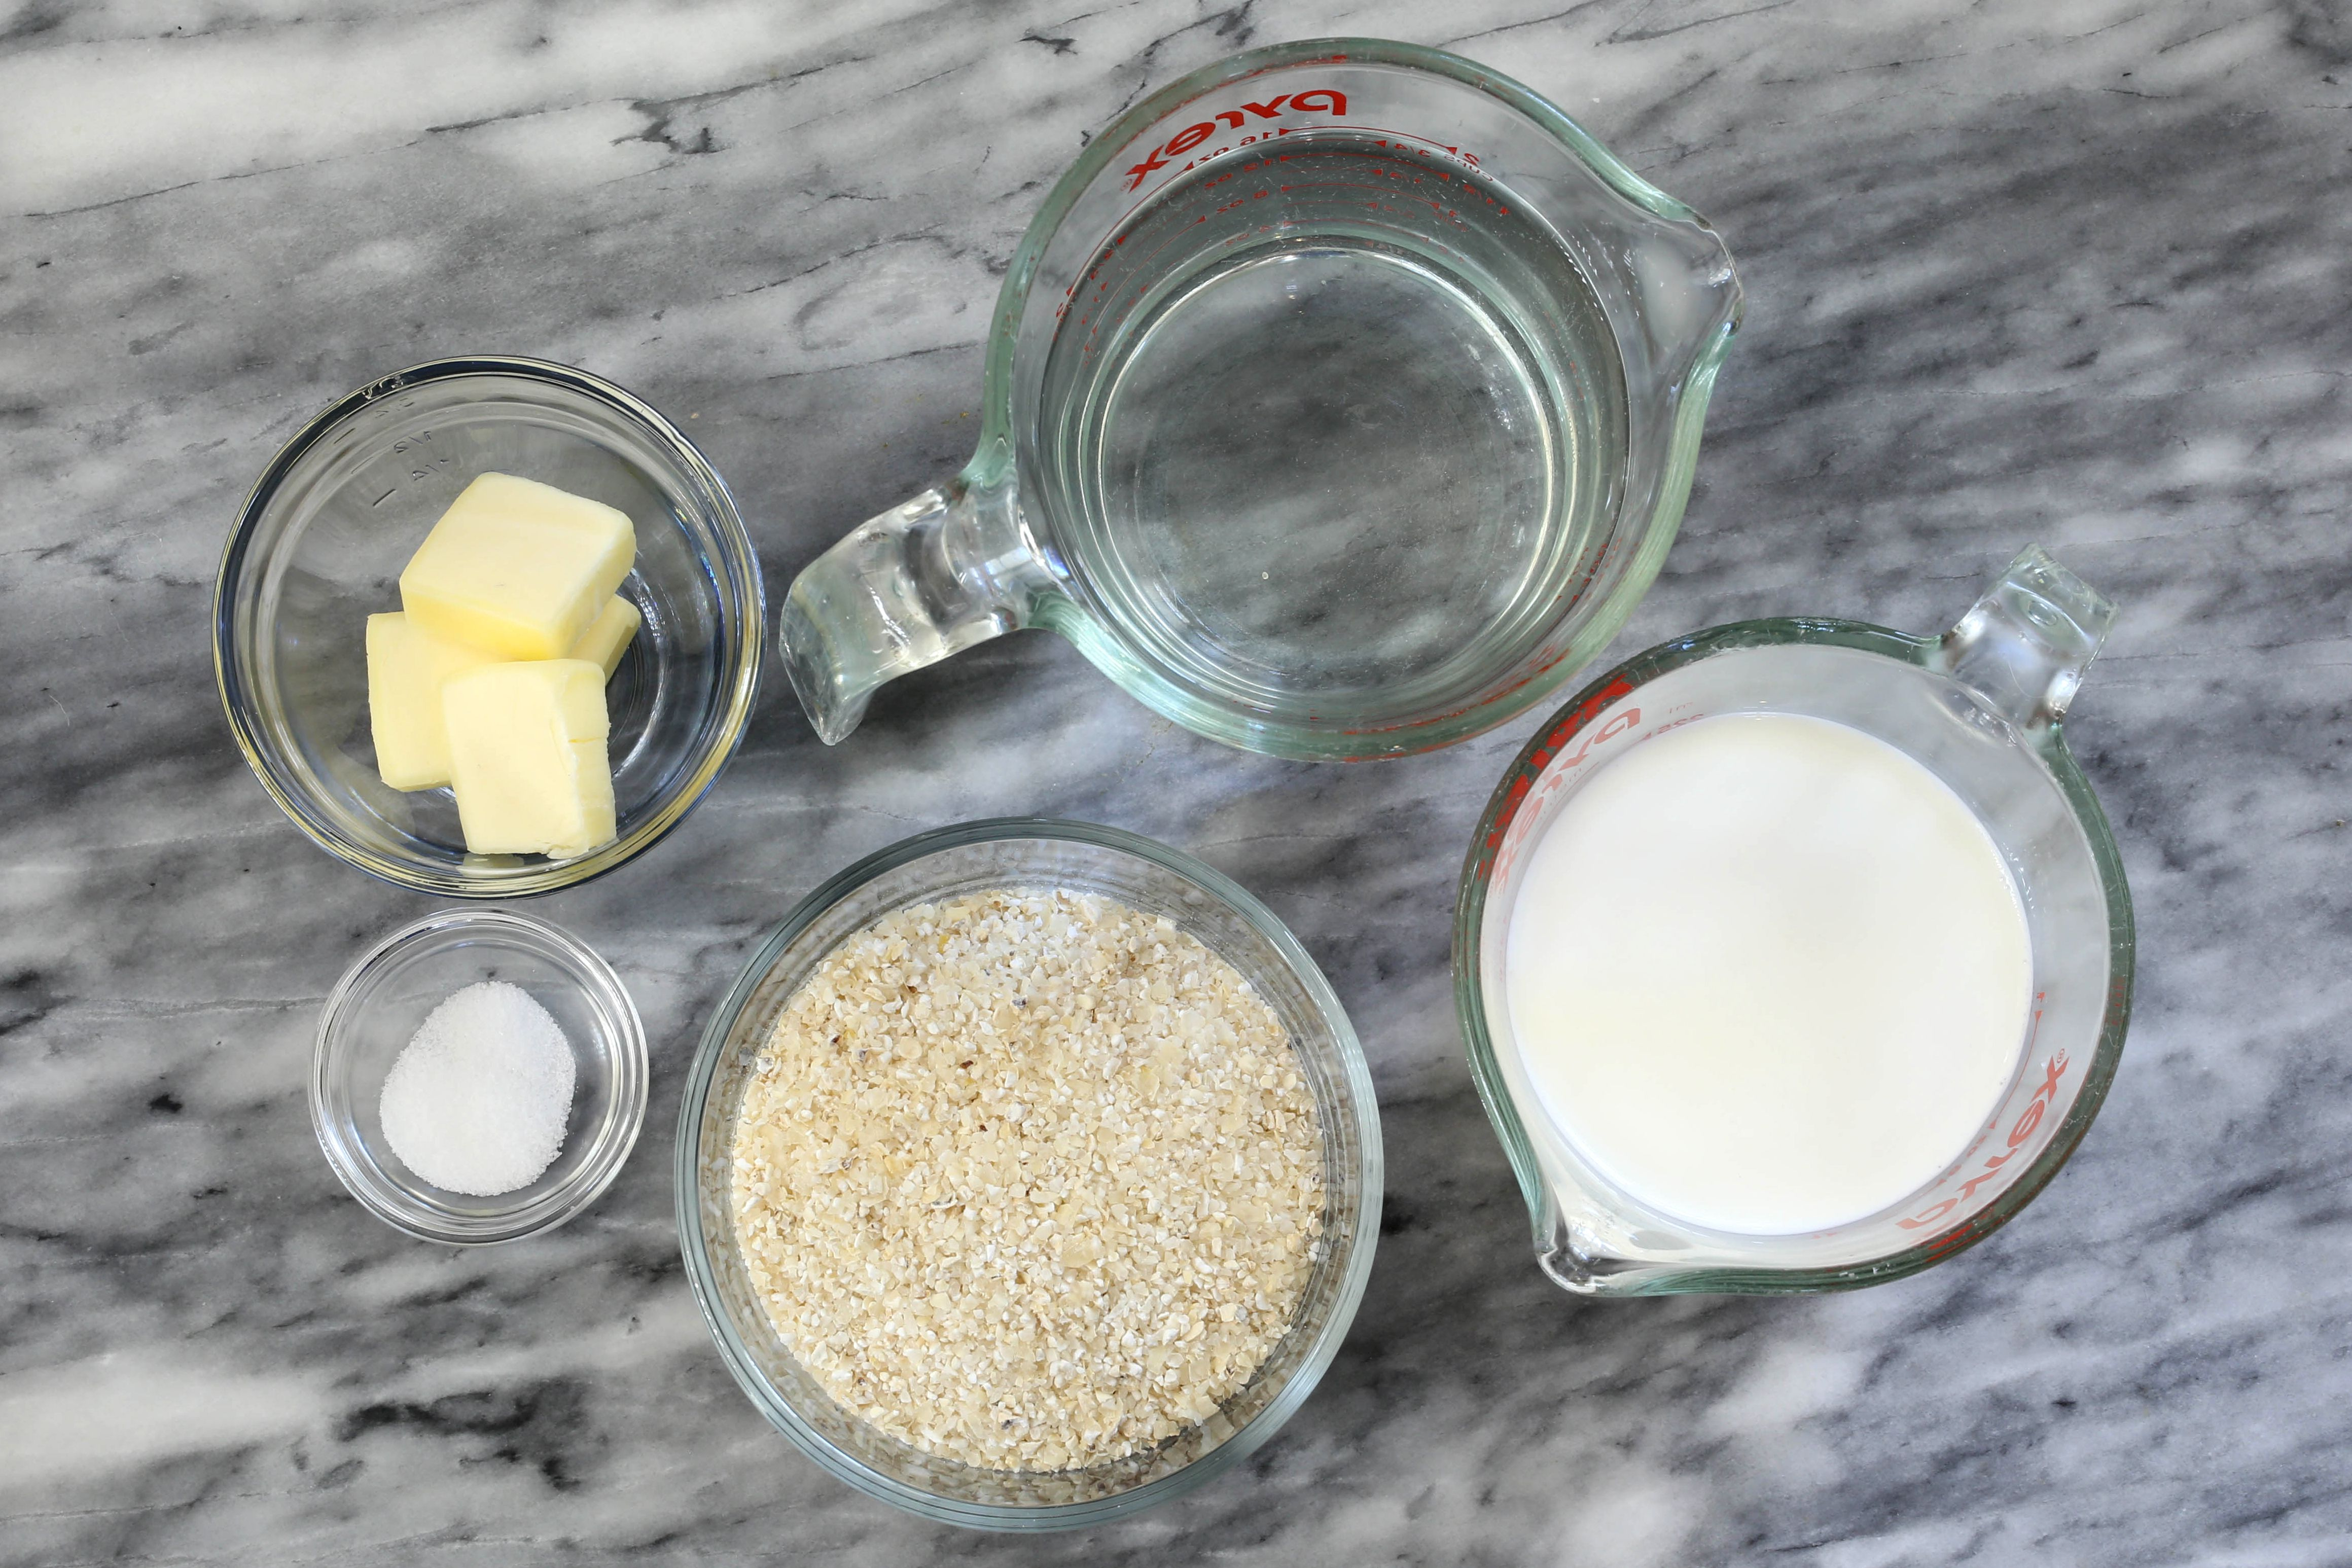 Ingredients for Instant Pot grits.